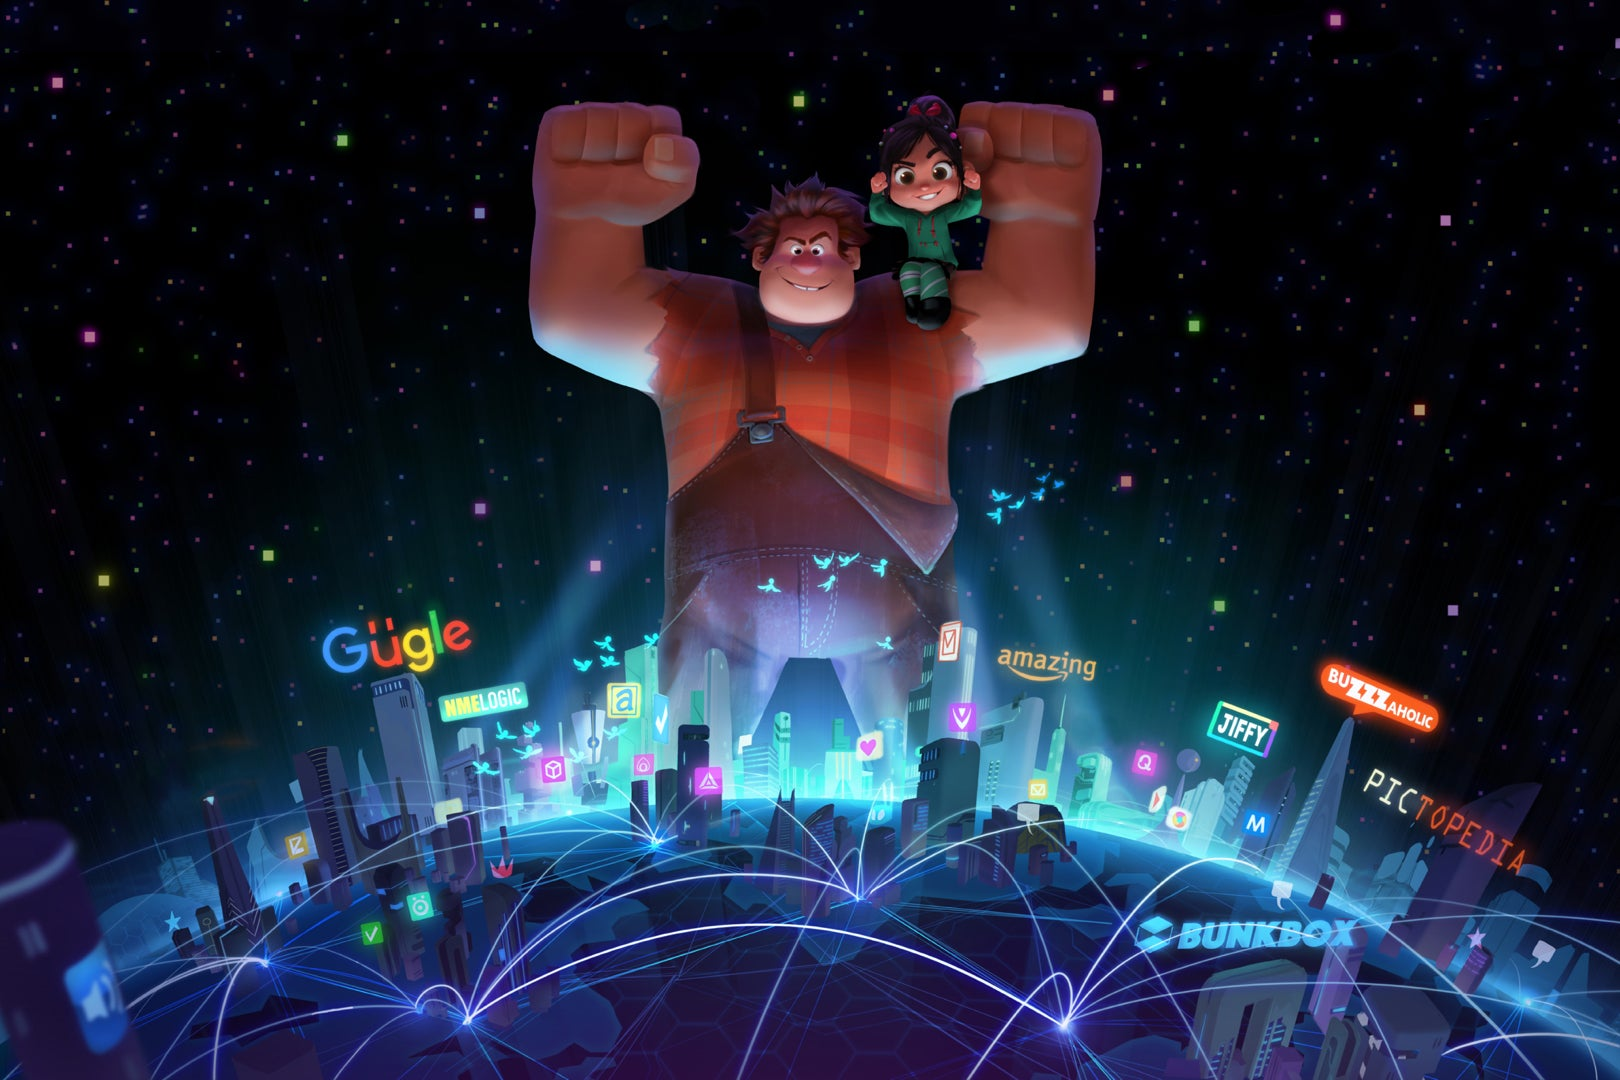 Wreck-It Ralph 2 Is Bringing Back All The Disney Princesses, And Making Them Wickedly Funny